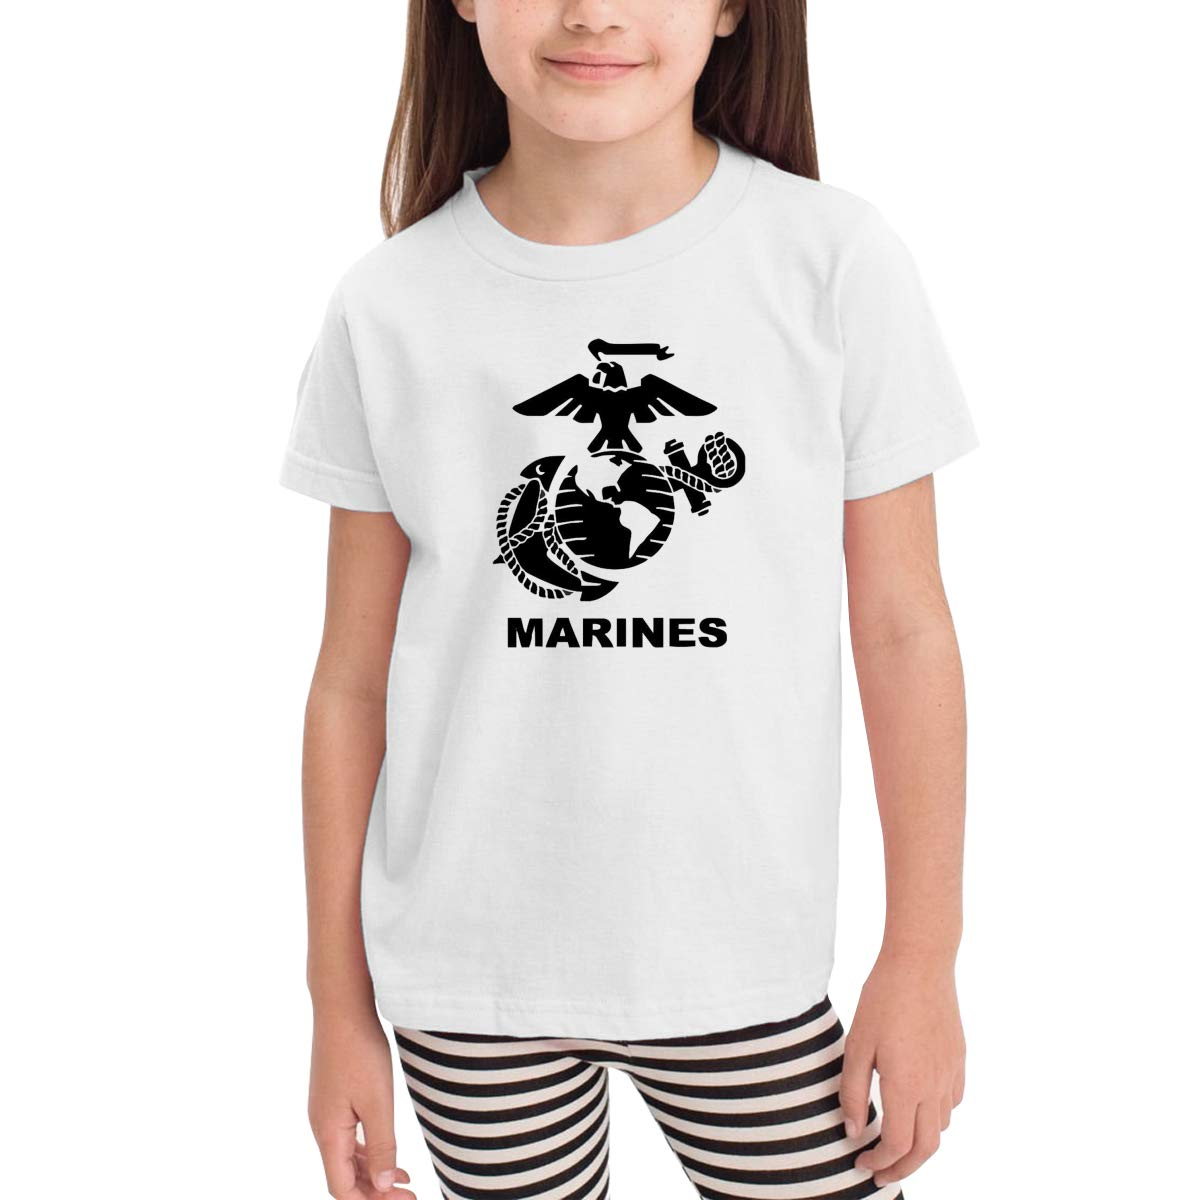 Onlybabycare US Marine Corps Logo 100/% Cotton Toddler Baby Boys Girls Kids Short Sleeve T Shirt Top Tee Clothes 2-6 T